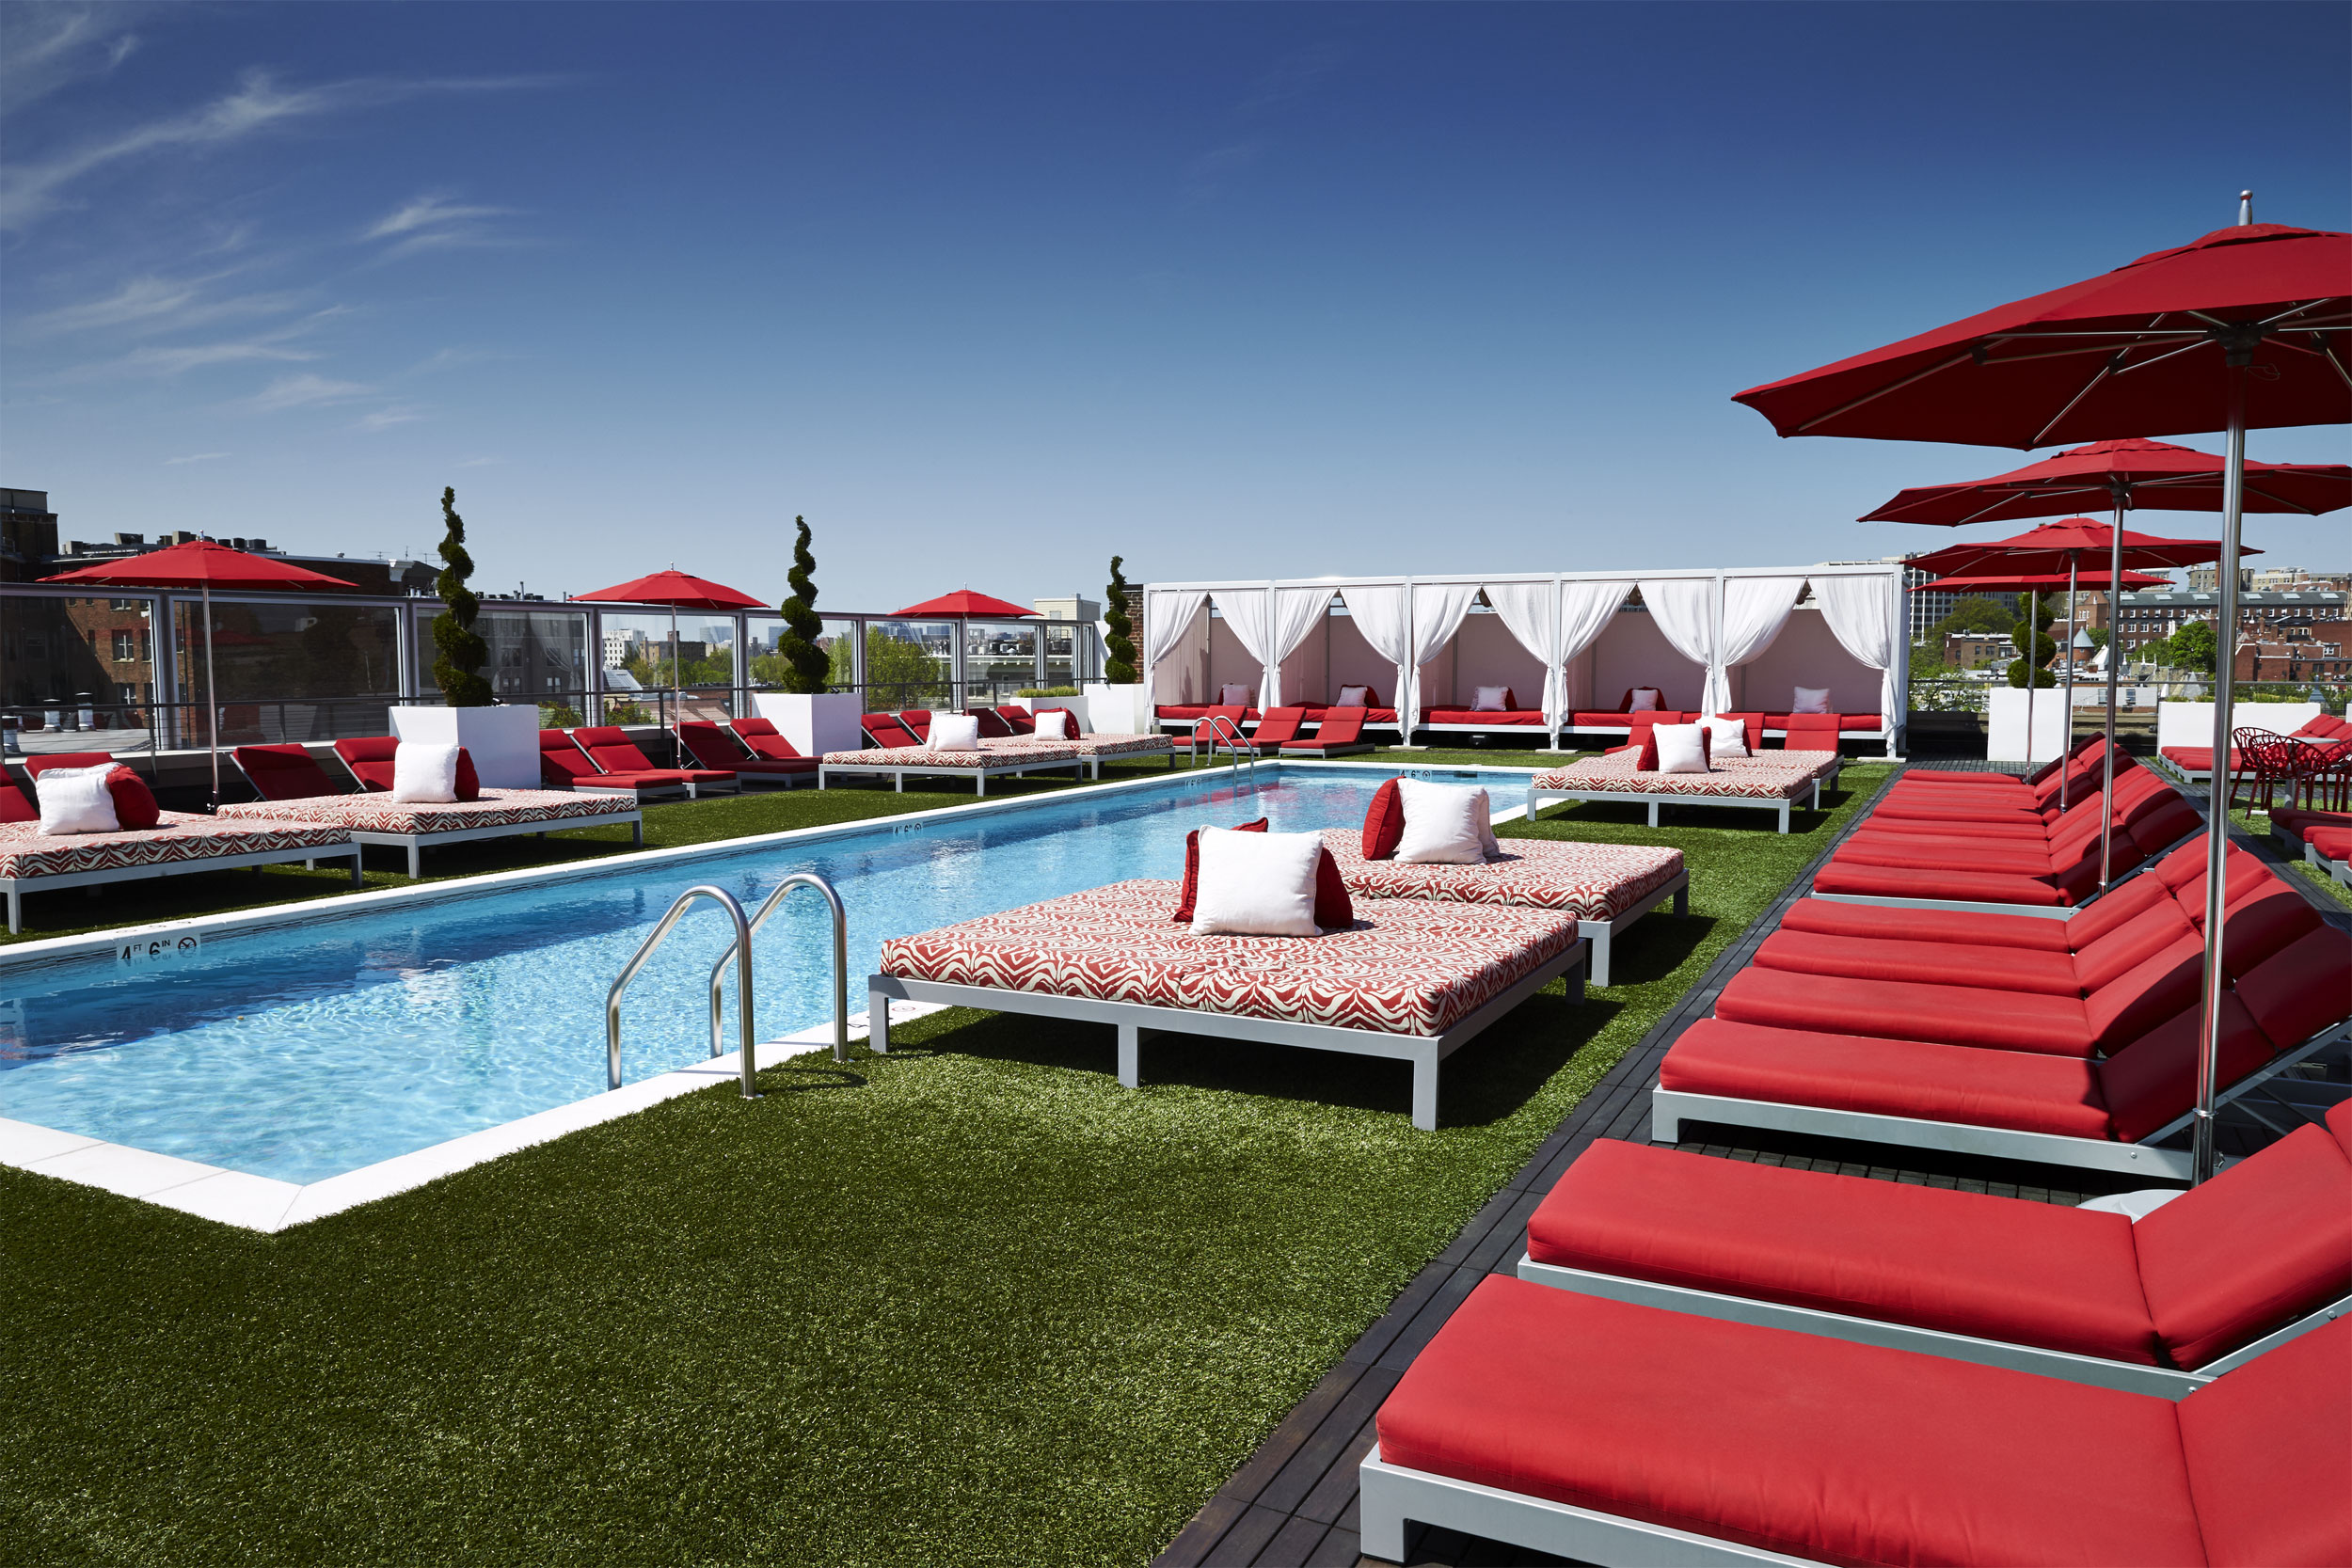 Sundeck at The Penthouse Pool Club hosts District Bliss Networking Social in DC